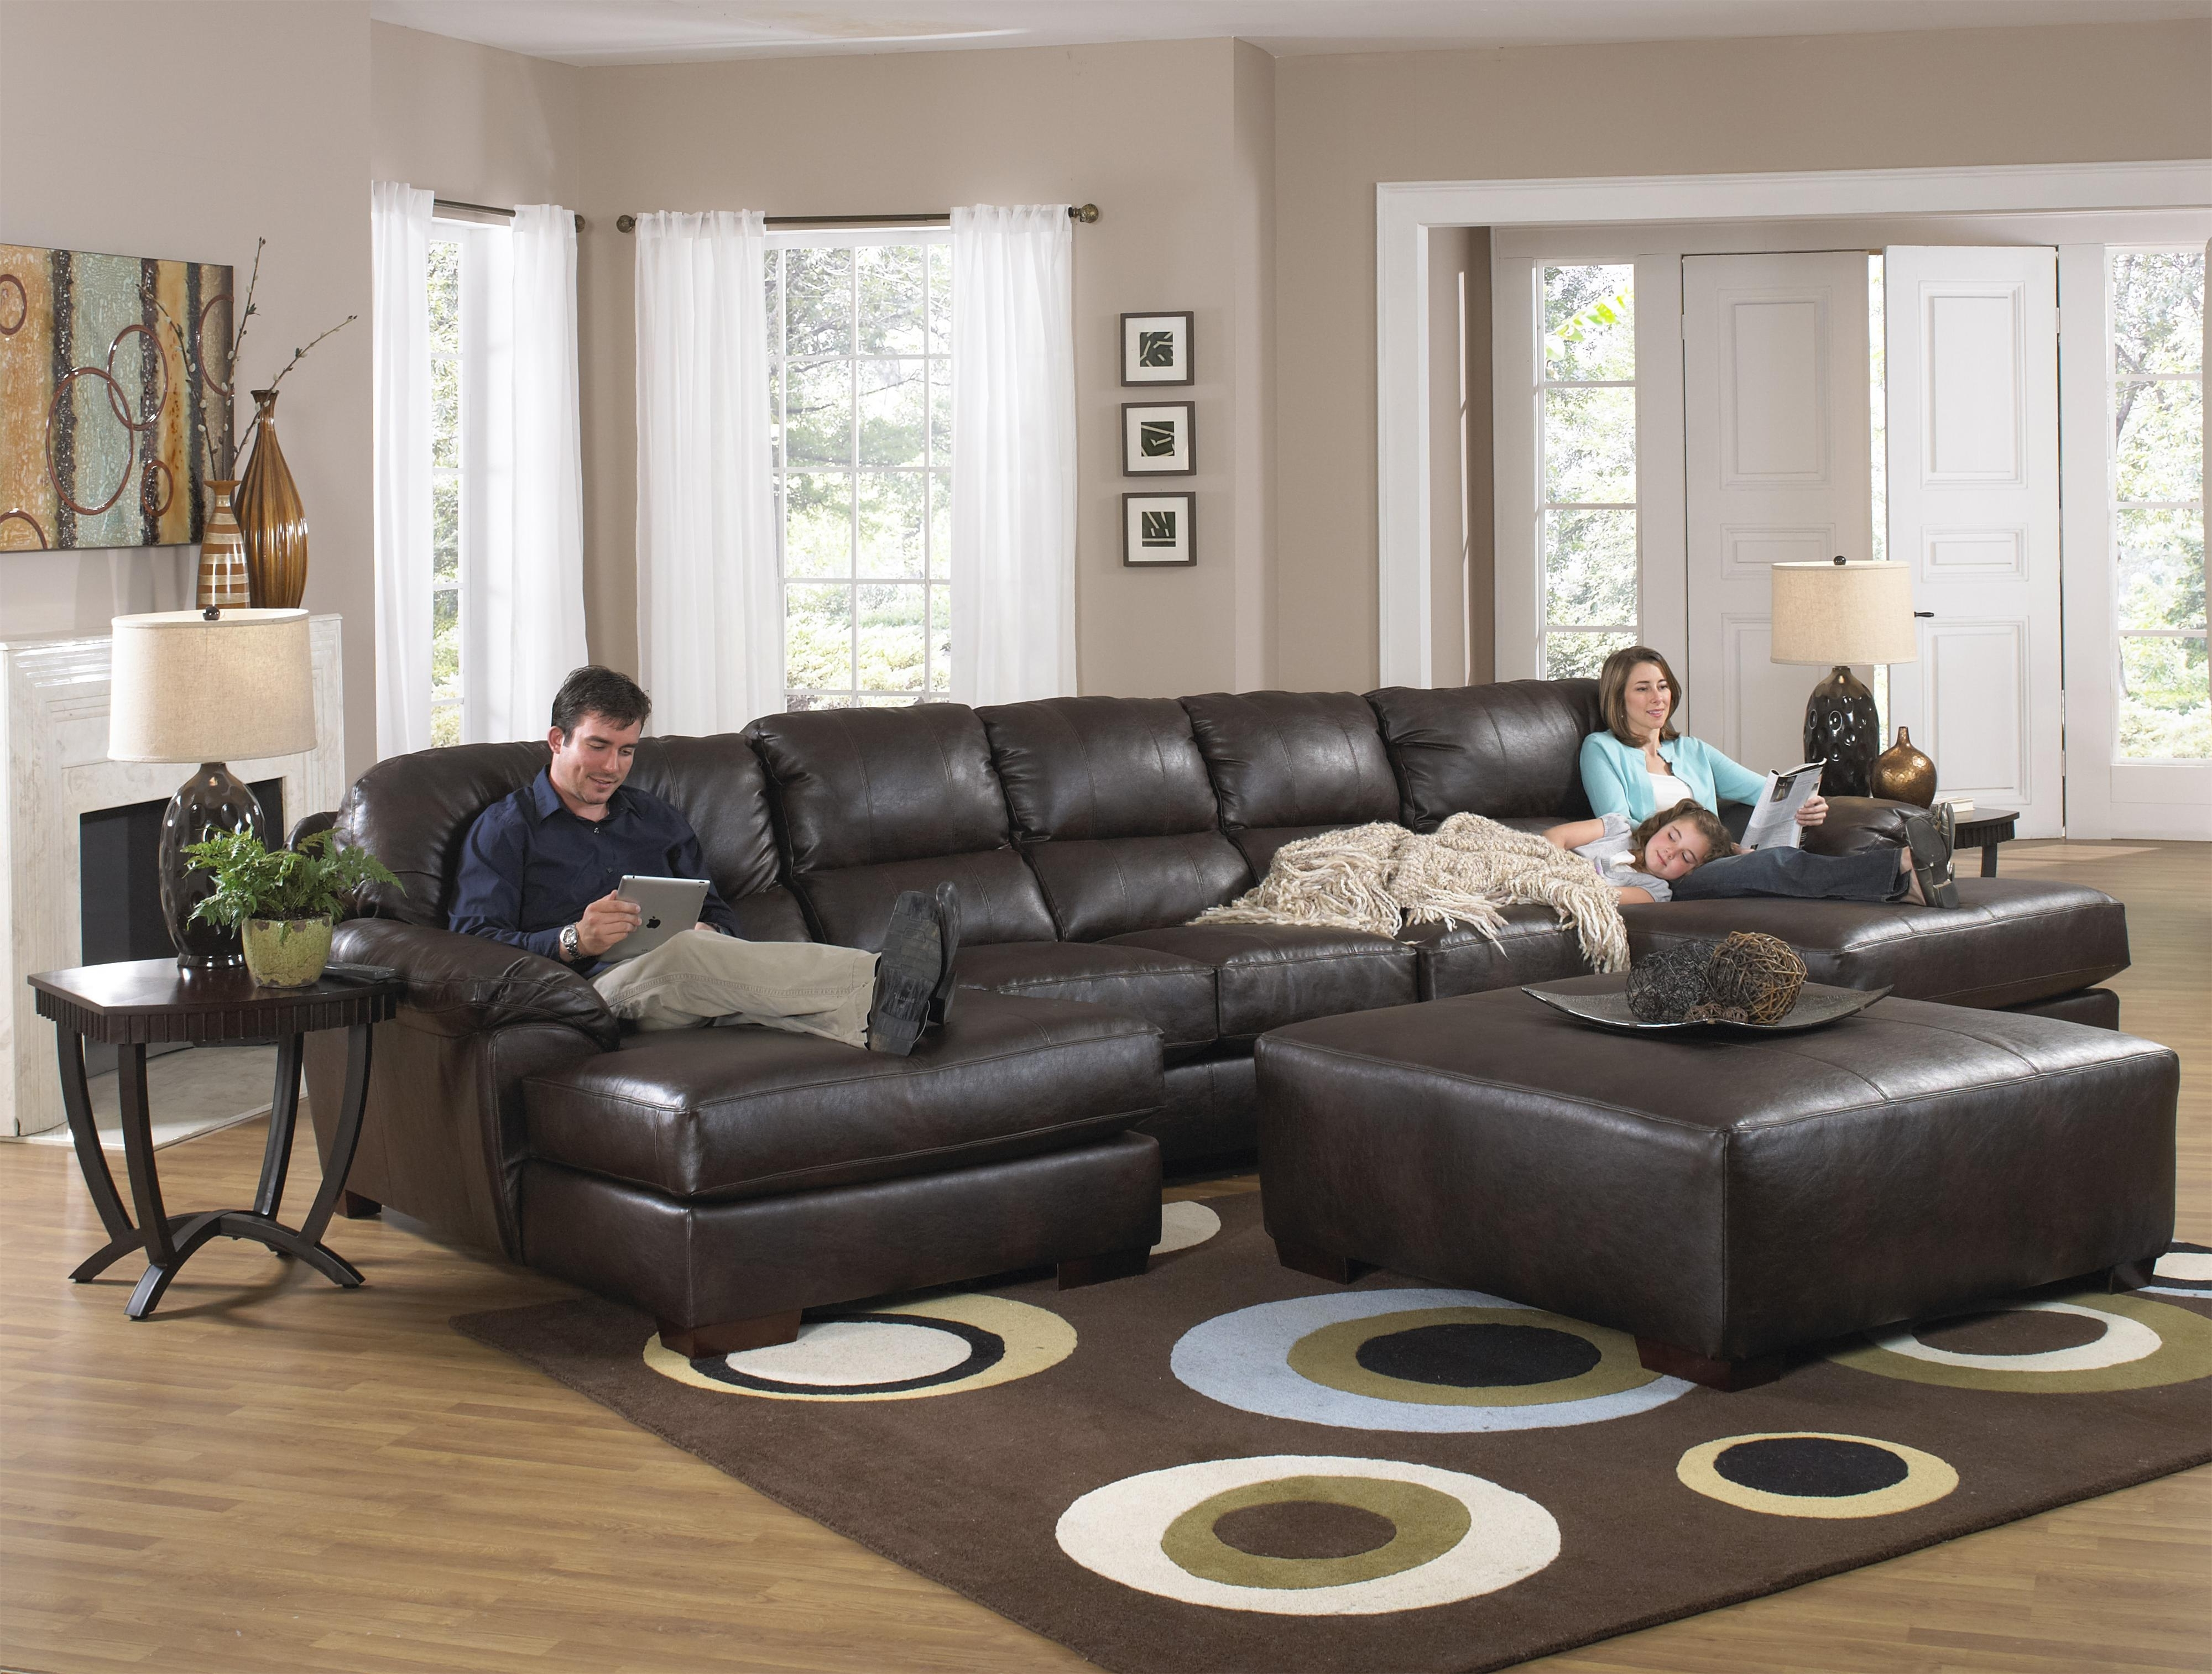 Most Current Sectional Sofas With Chaise And Recliner With Two Chaise Sectional Sofa With Five Total Seatsjackson (View 12 of 15)